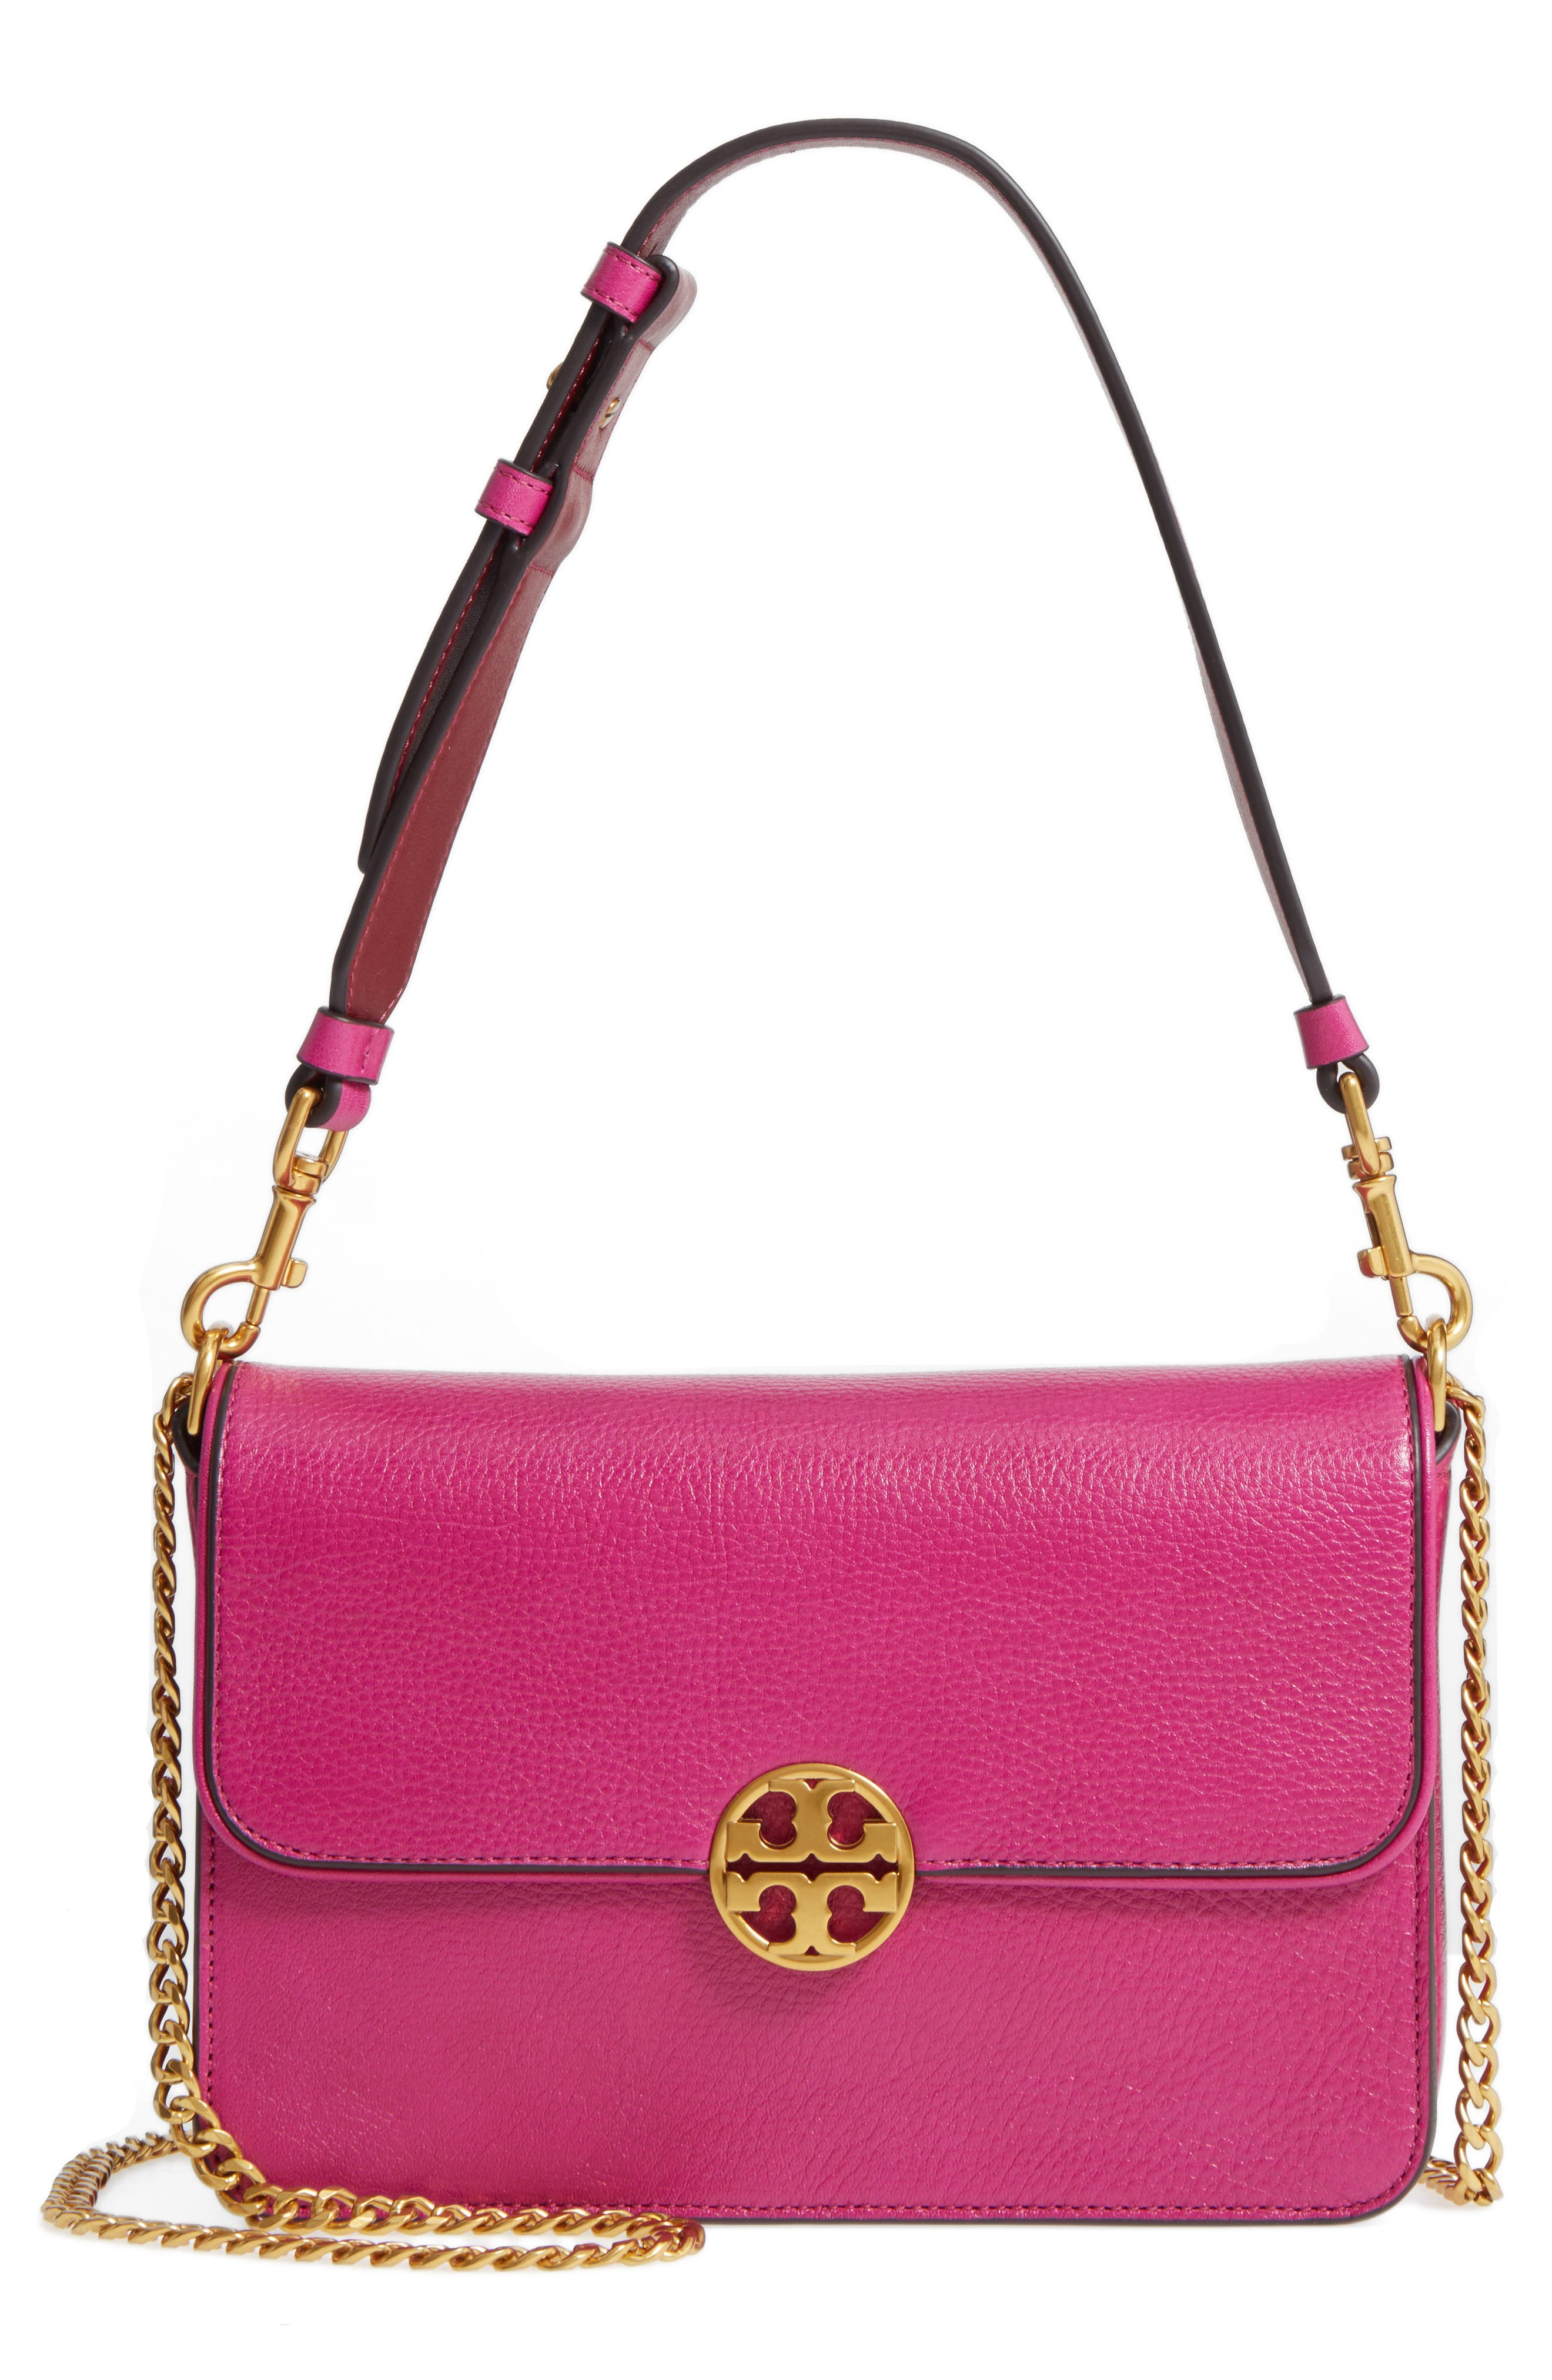 Tory Burch Chelsea Genuine Leather Shoulder Bag